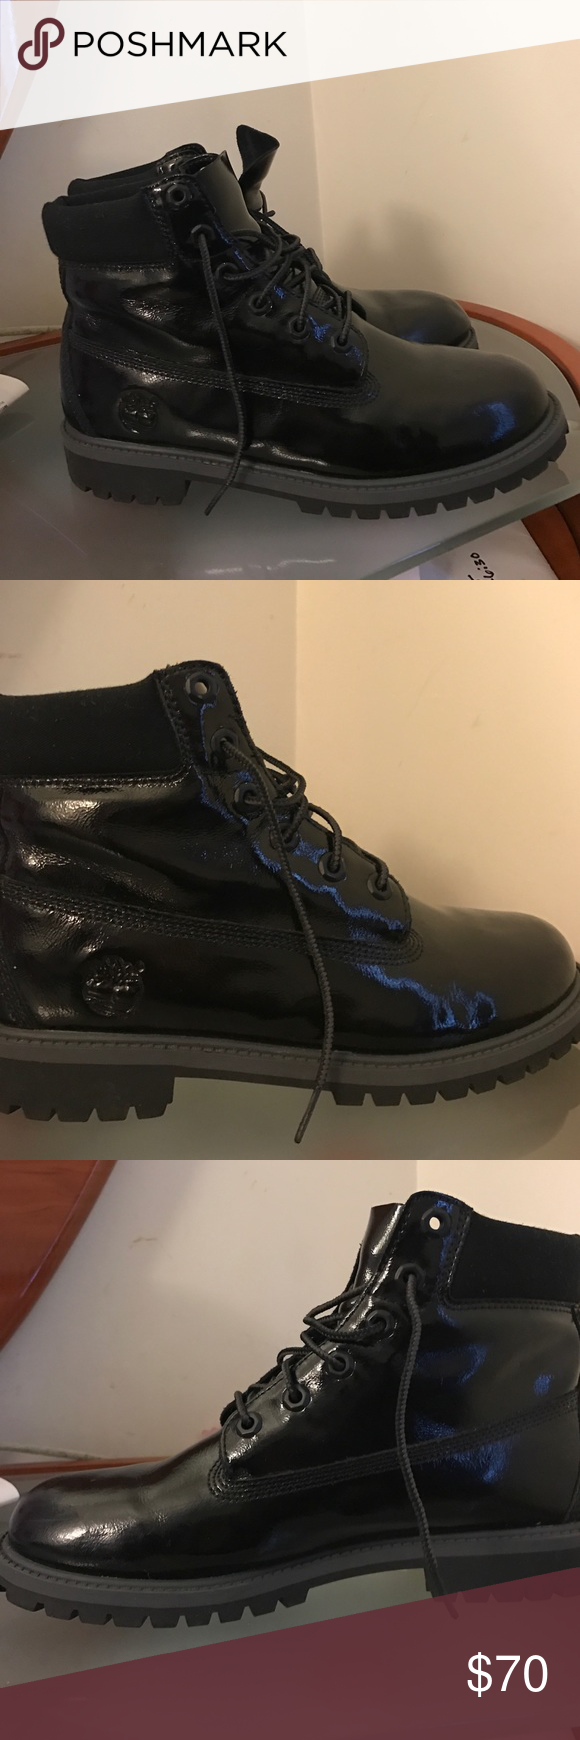 💥Timberland Boots Patent Leather